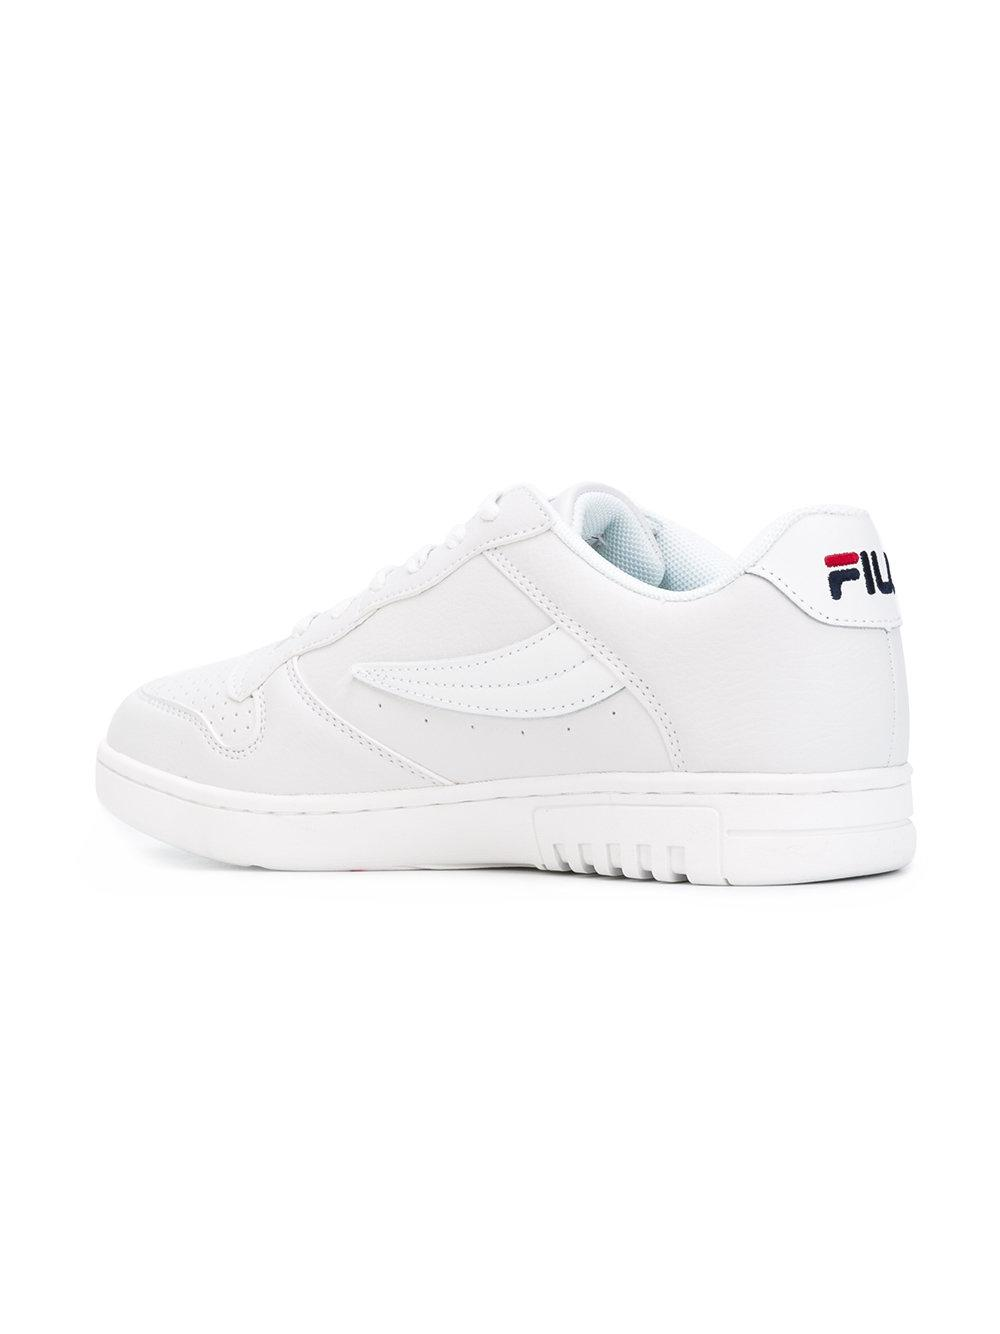 Fila Leather Fx-100 Sneakers in White